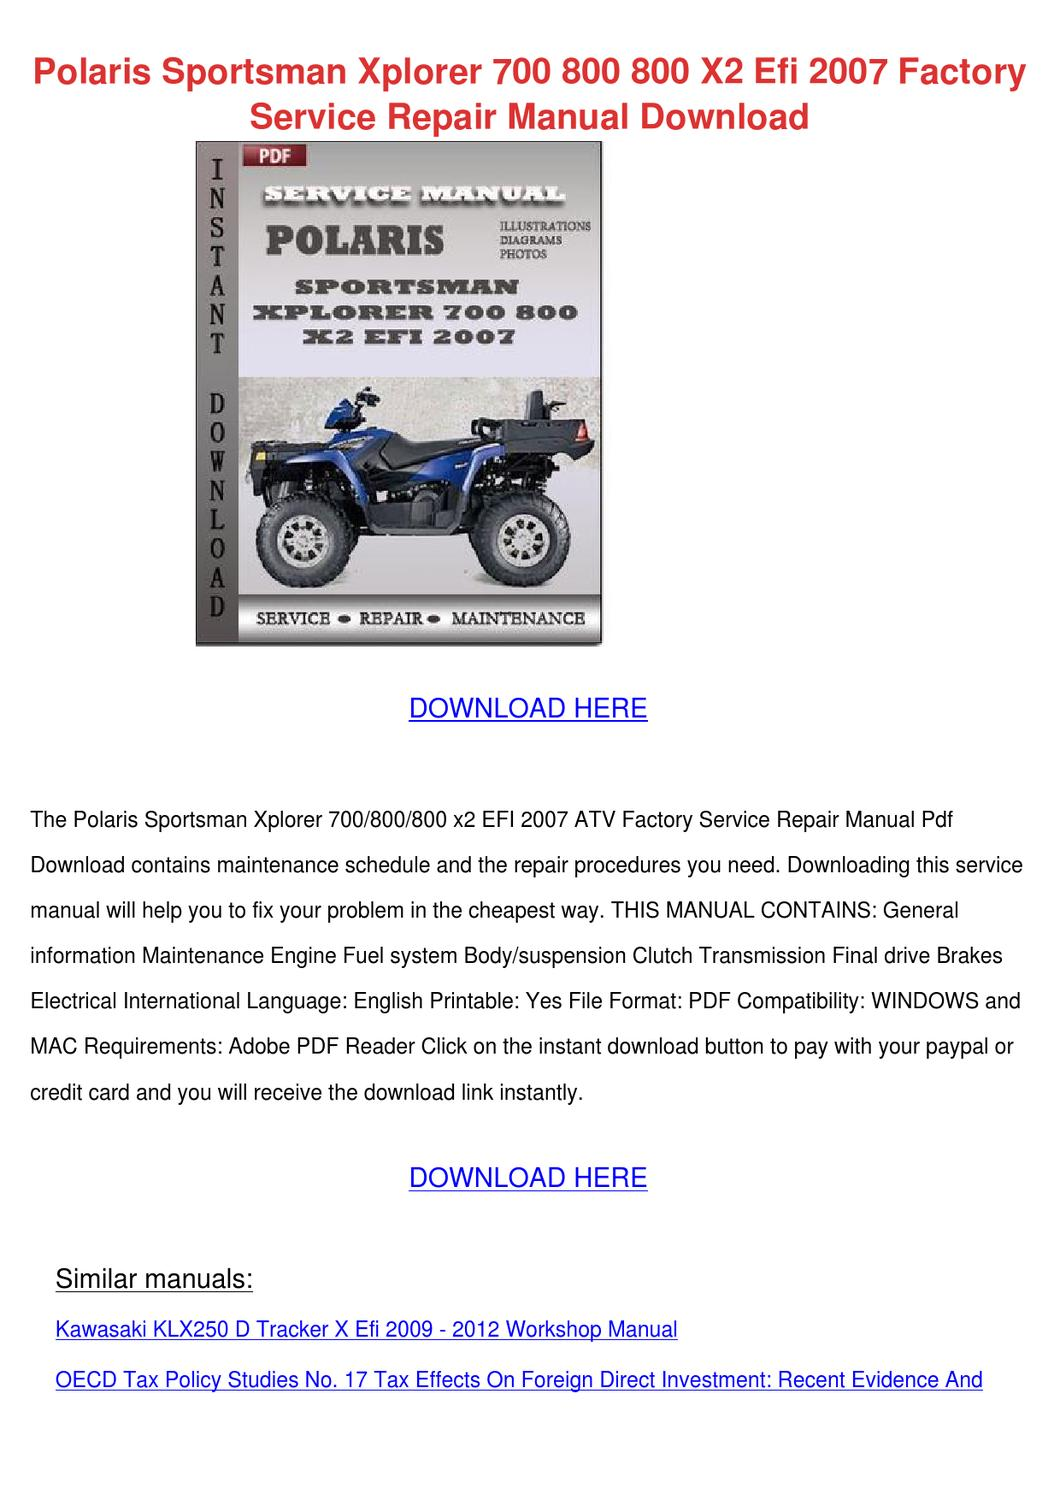 2015 Polaris 800 Sportsman Service Manual Ebook 2008 Twin Wiring Diagram Array Pdf Rh Accountabilitycounseling Com